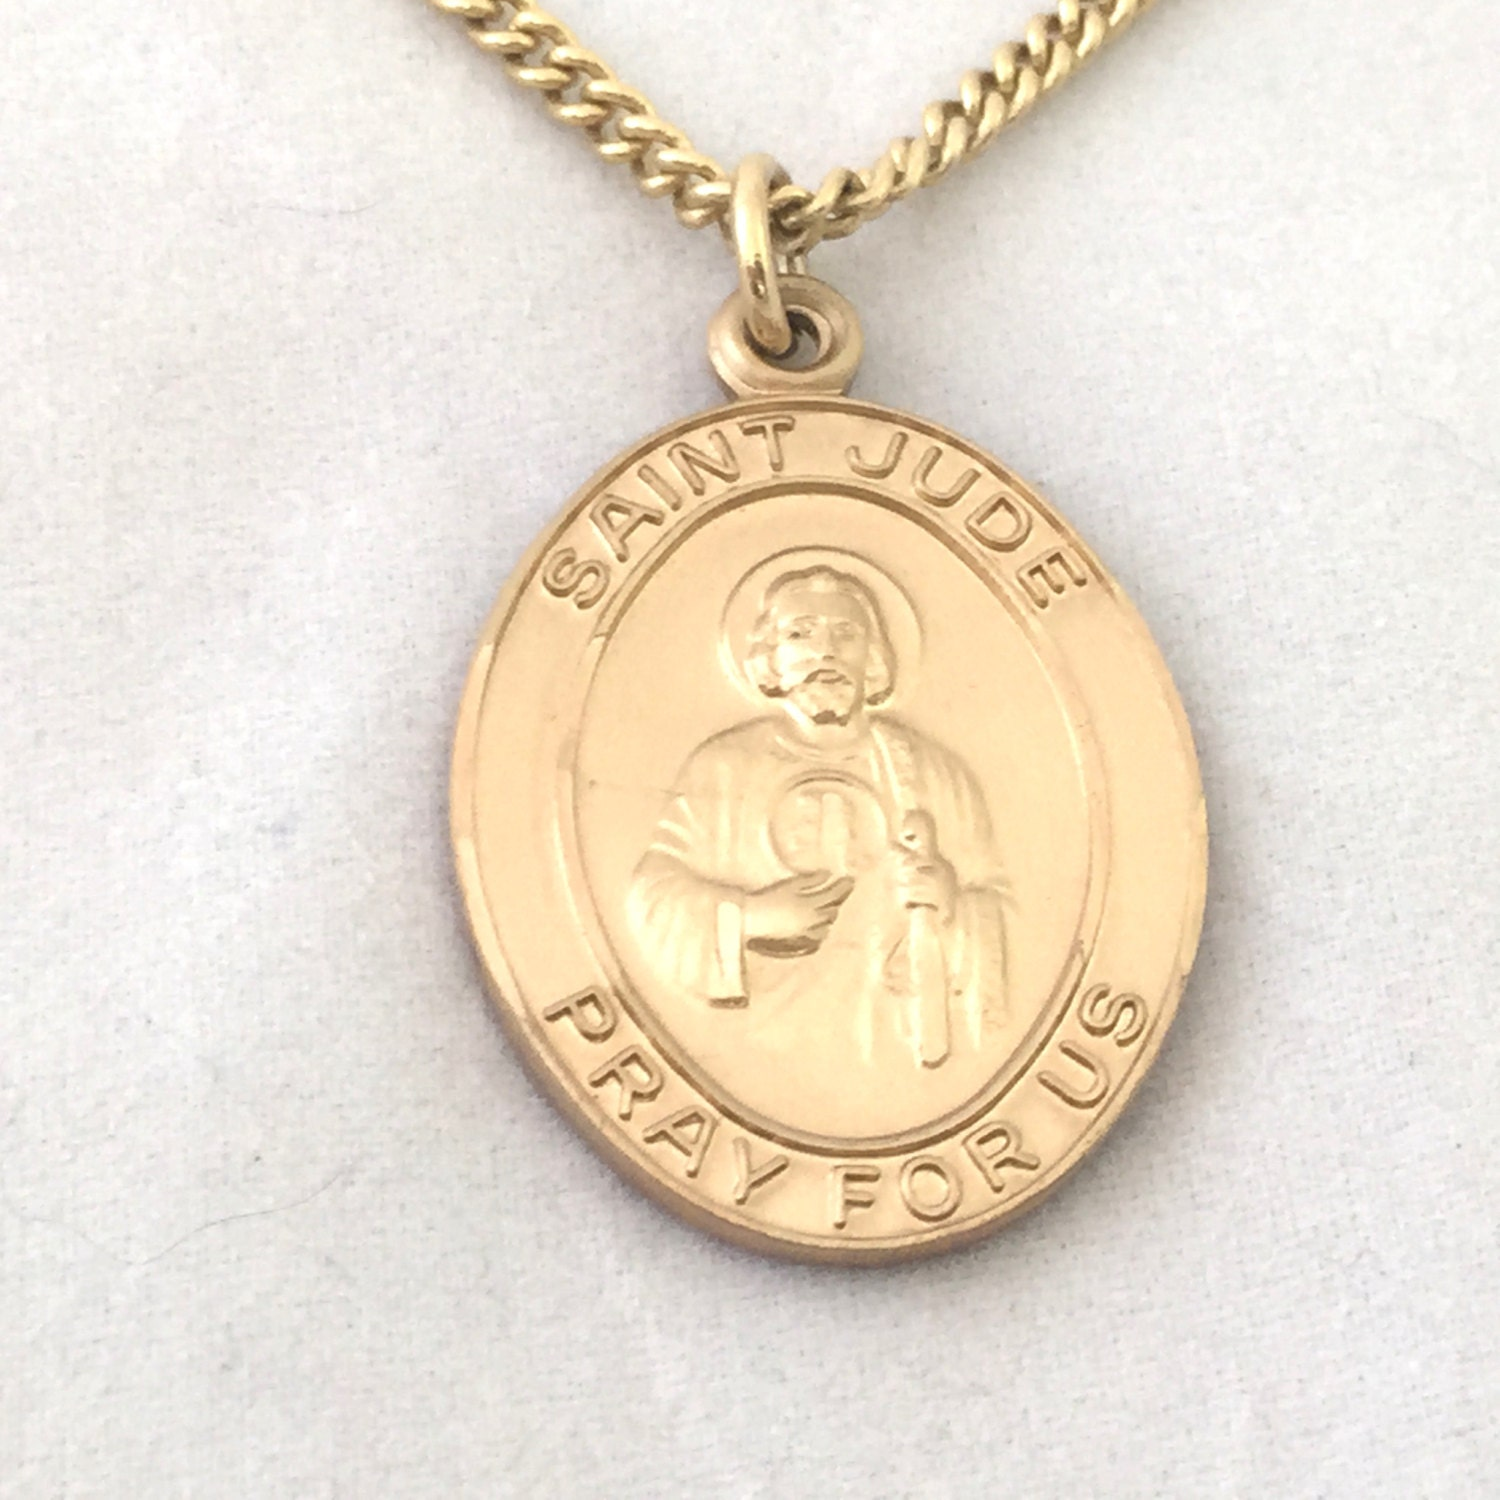 jude medallion necklace st jude pray by